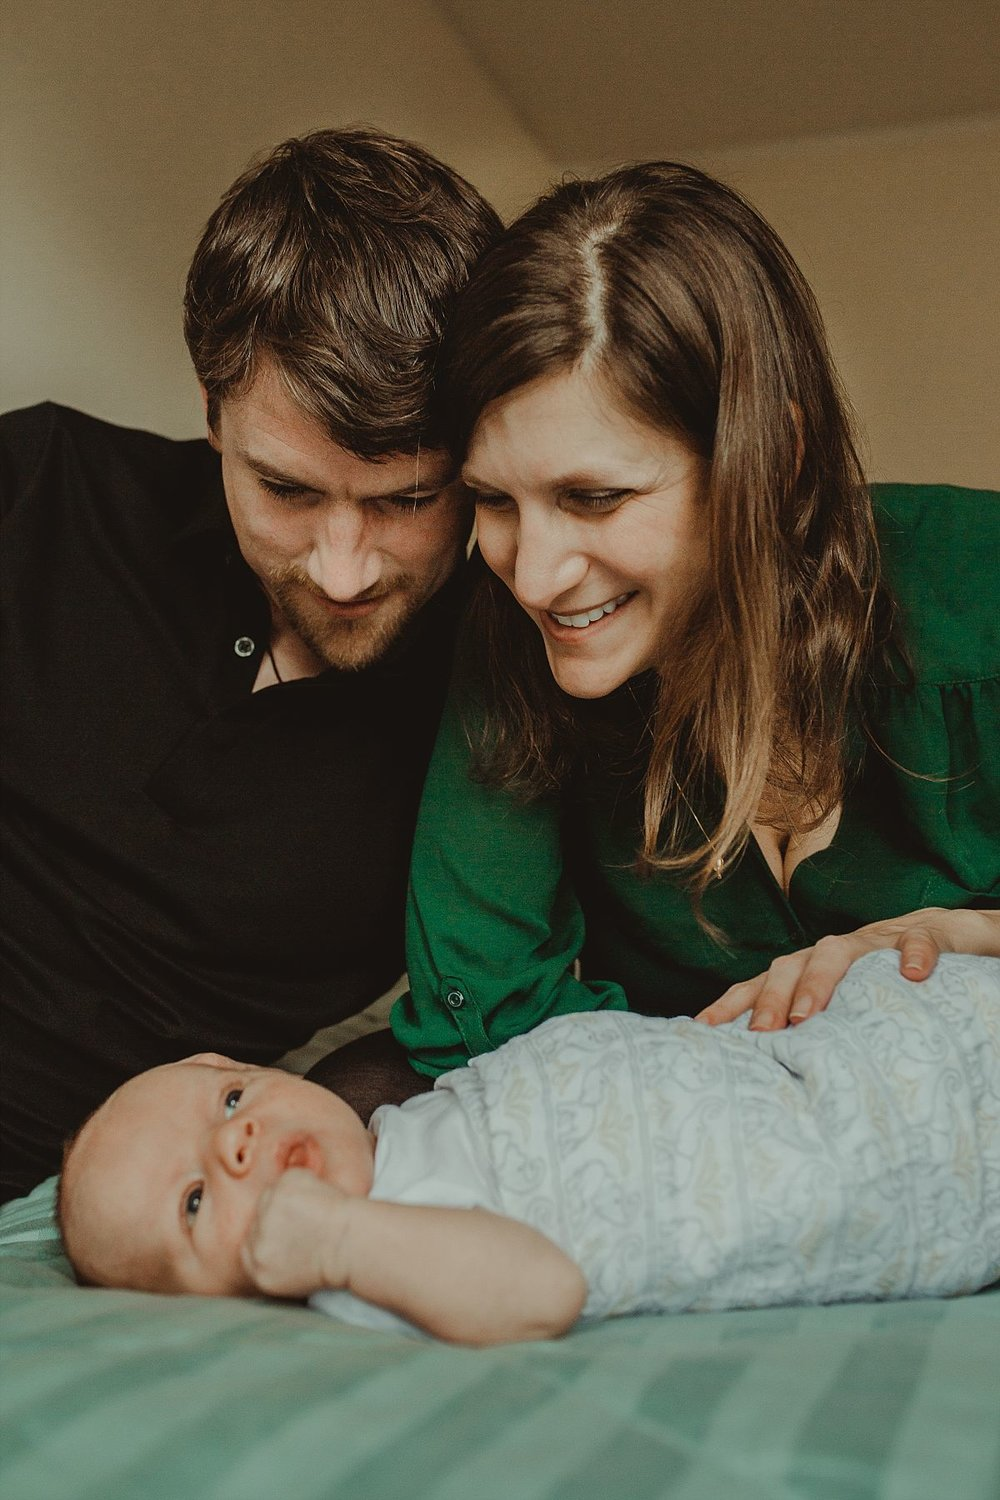 nyc family and newborn photographer mom and and dad look adoringly at newborn son on bed